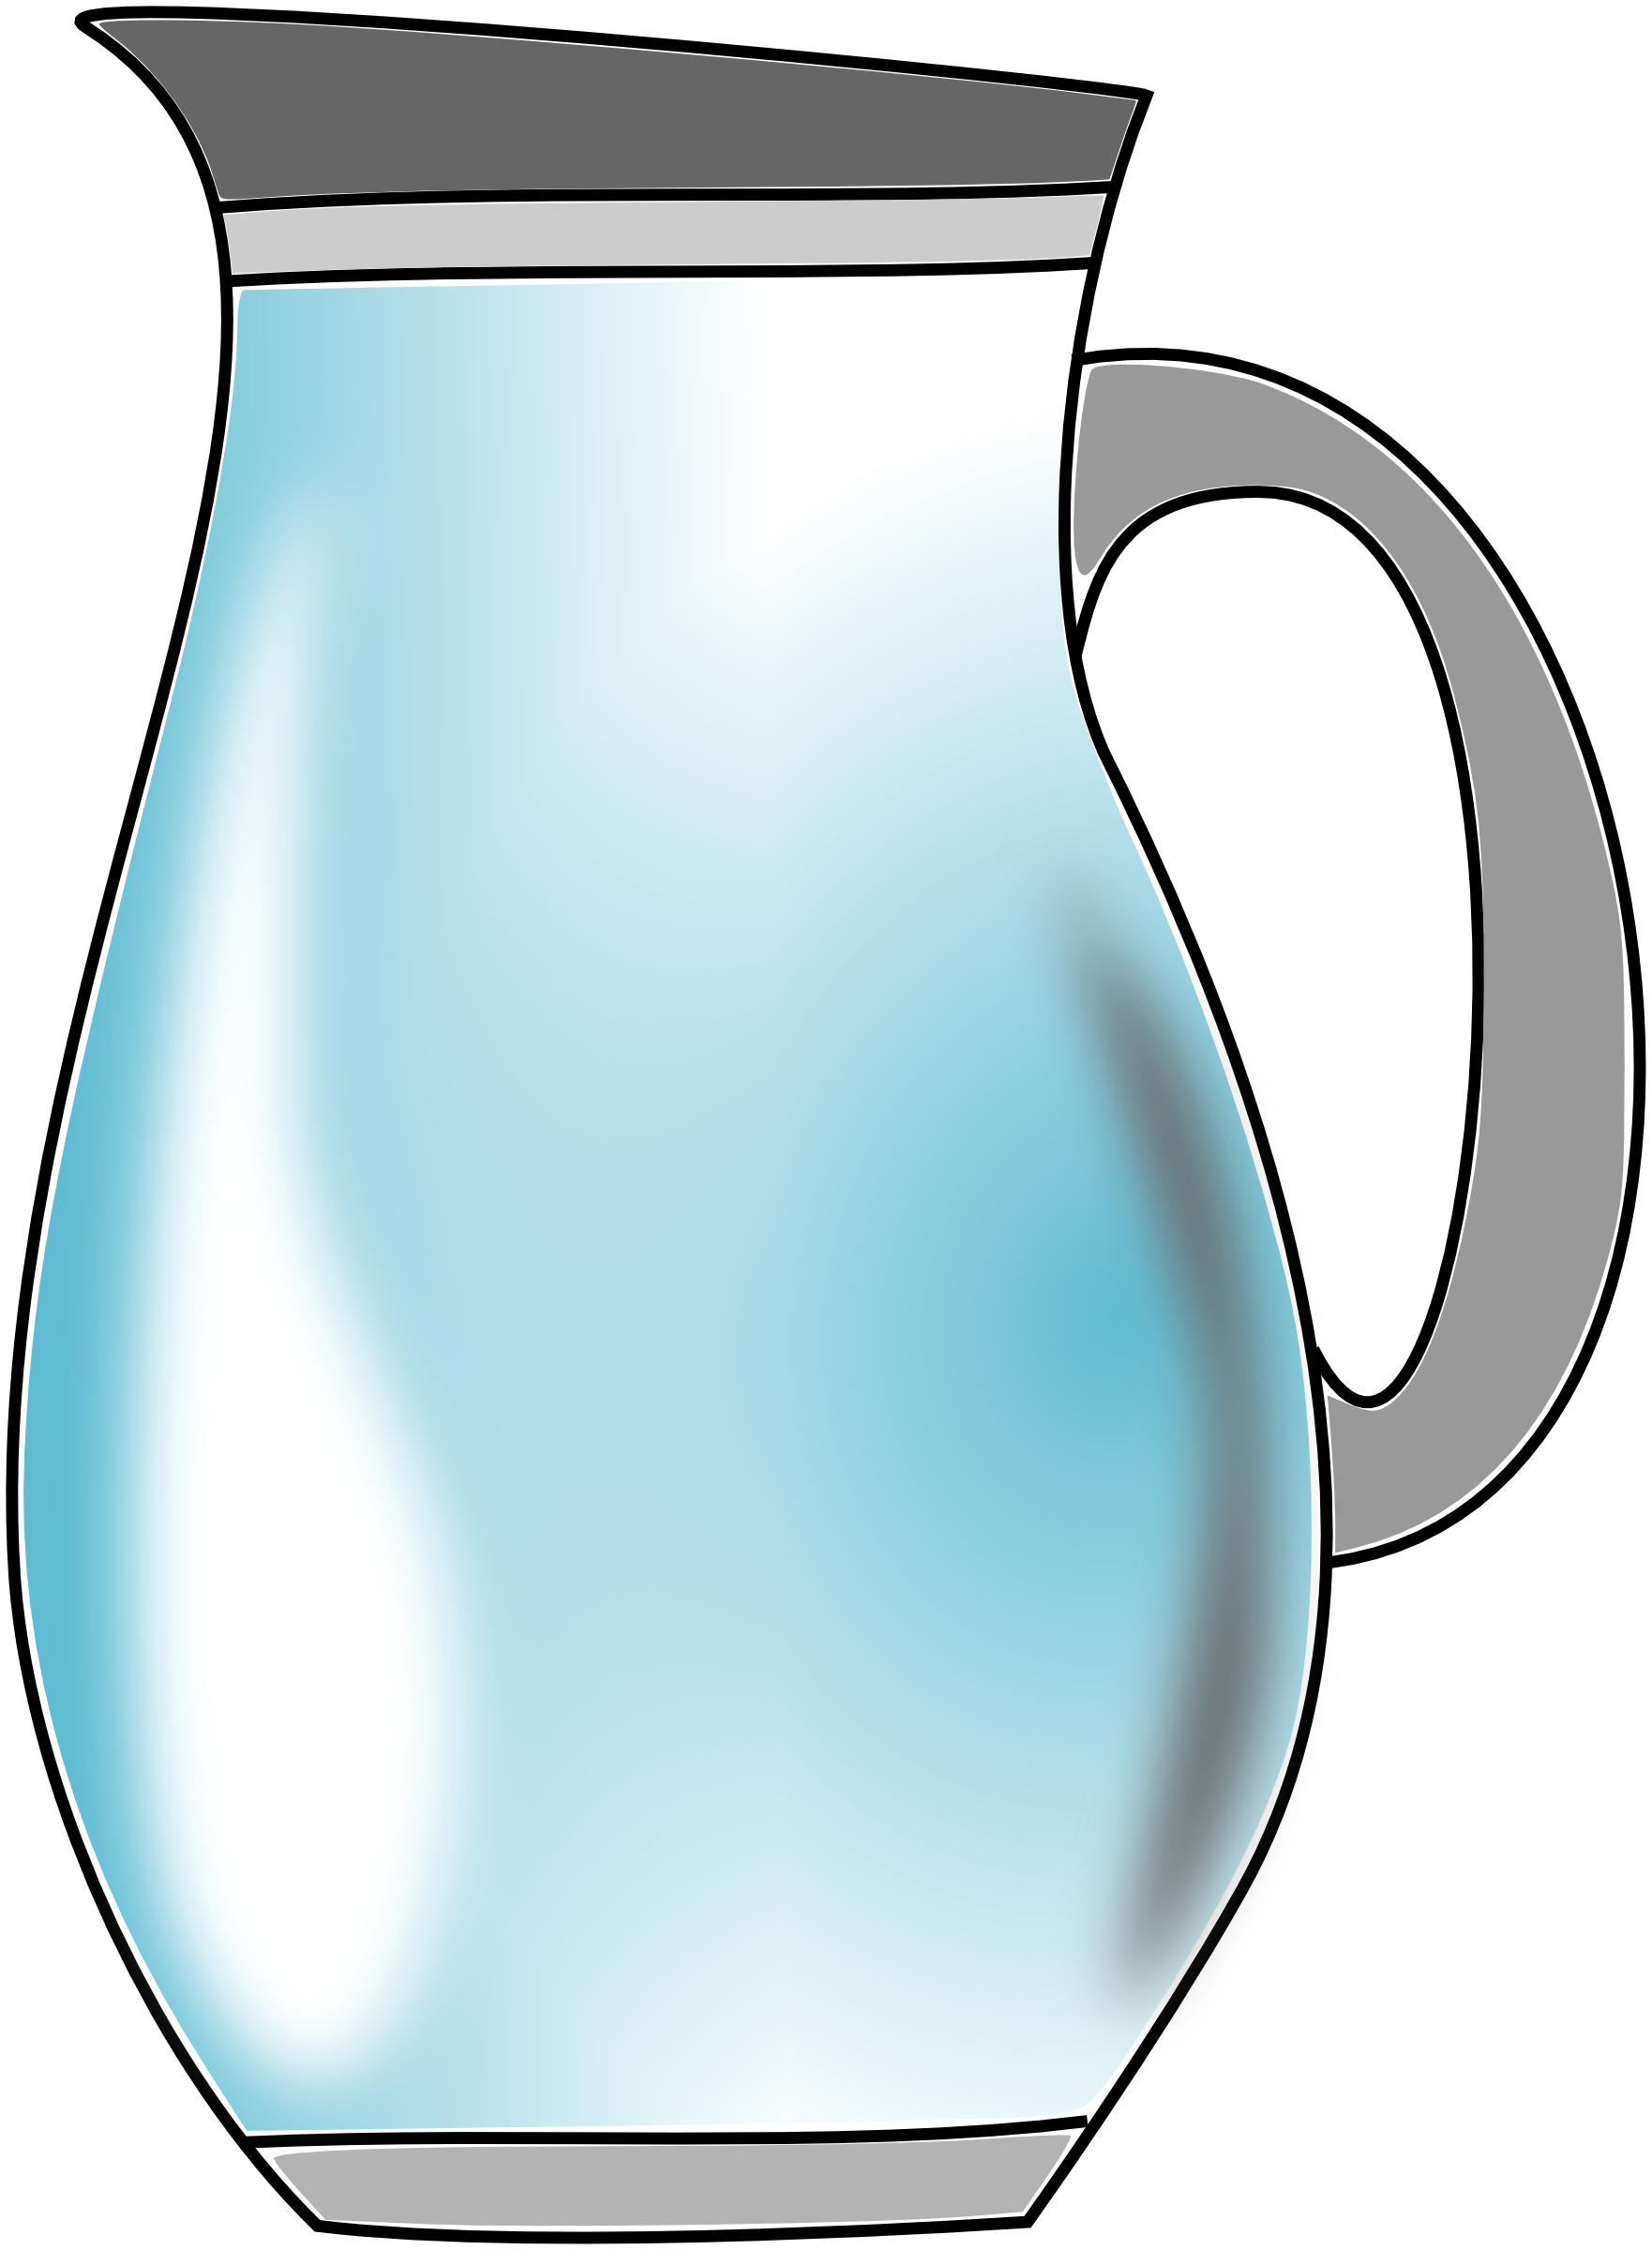 Clipart money water. Pitcher of panda free